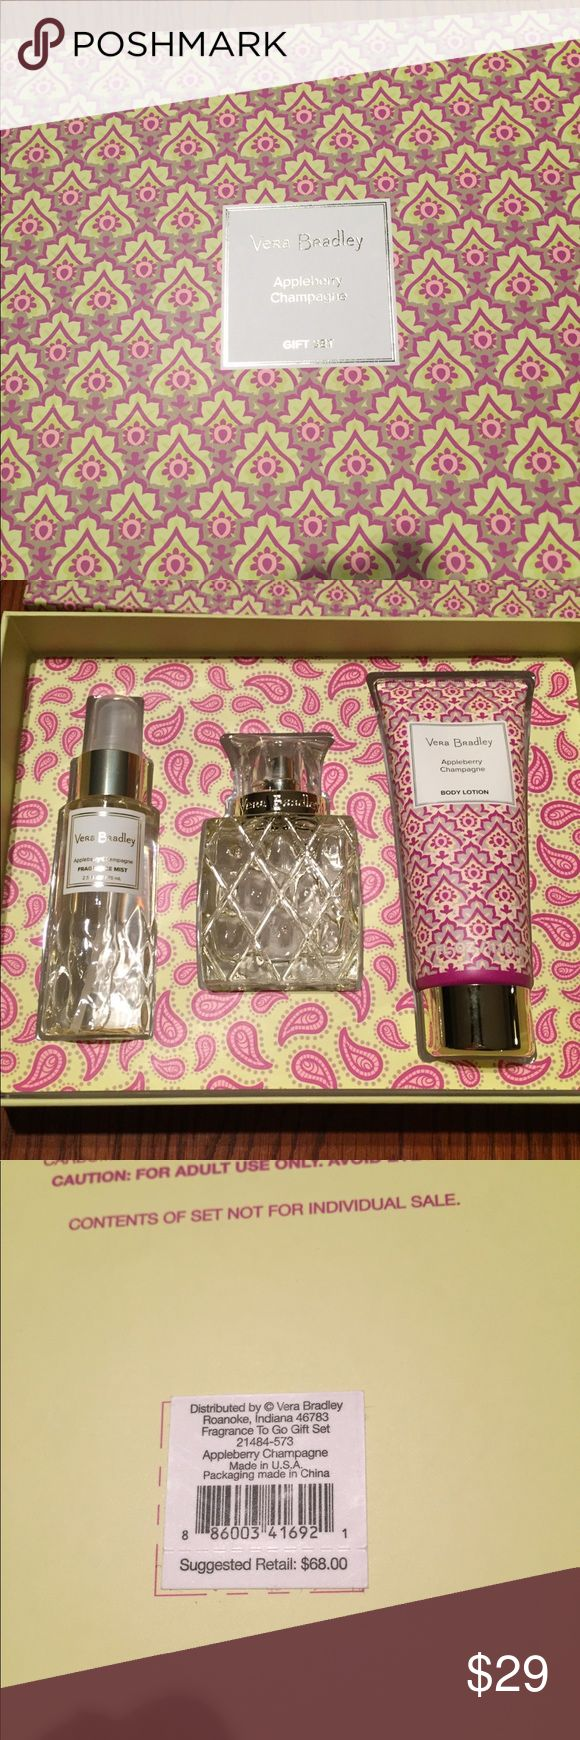 Vera Bradley Appleberry Champagne Gift Set NWT. Vera Bradley Appleberry Champagne 3 piece gift set.  2.5 fl Oz fragrance mist, 1.7 fl Oz eau de toilette, and 4 fl Oz body lotion Vera Bradley Other